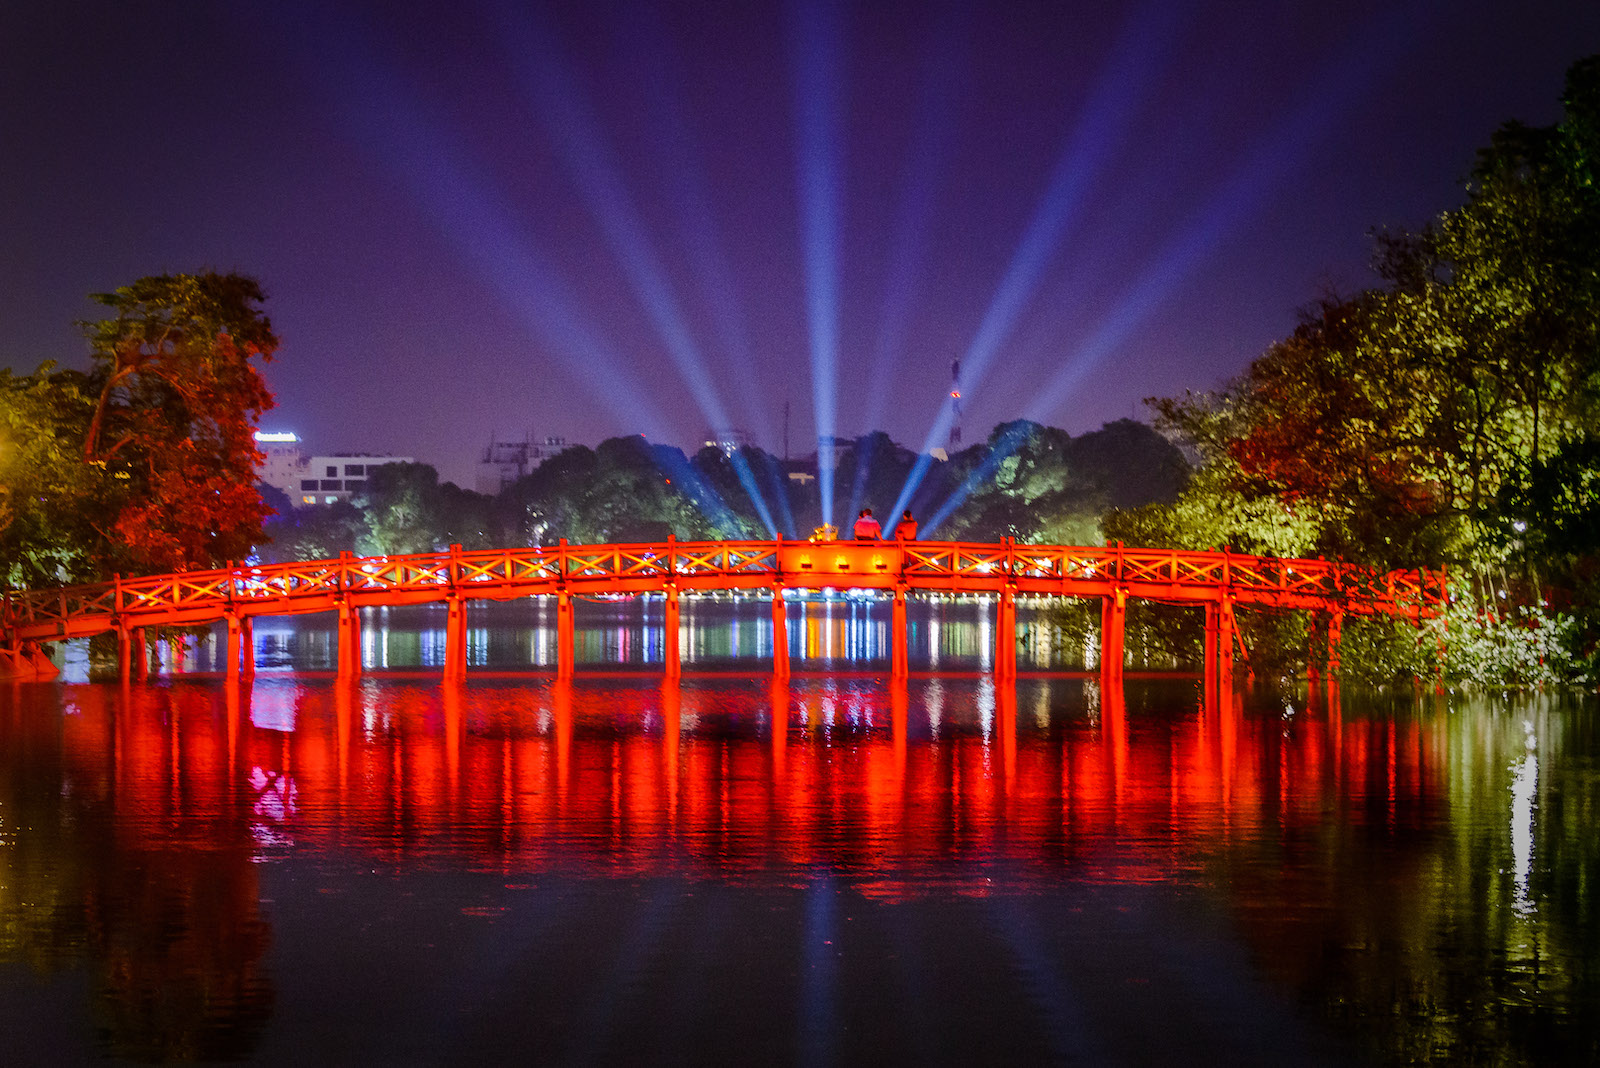 Hoàn Kiếm Lake at Night in China